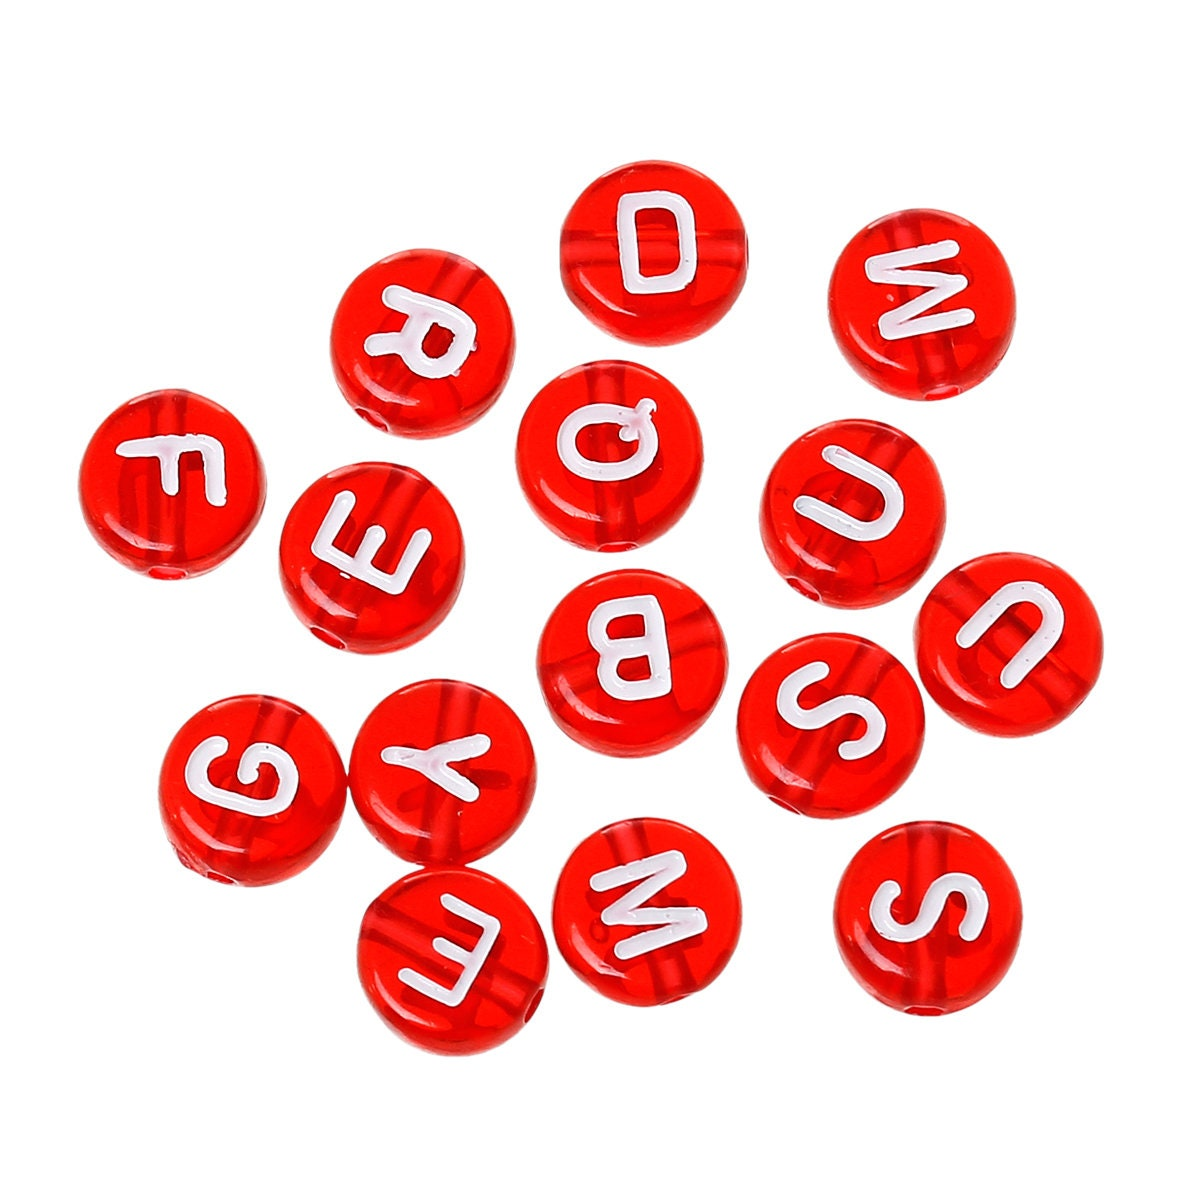 Red & White Alphabet Beads, 7mm Acrylic letter beads, ABC